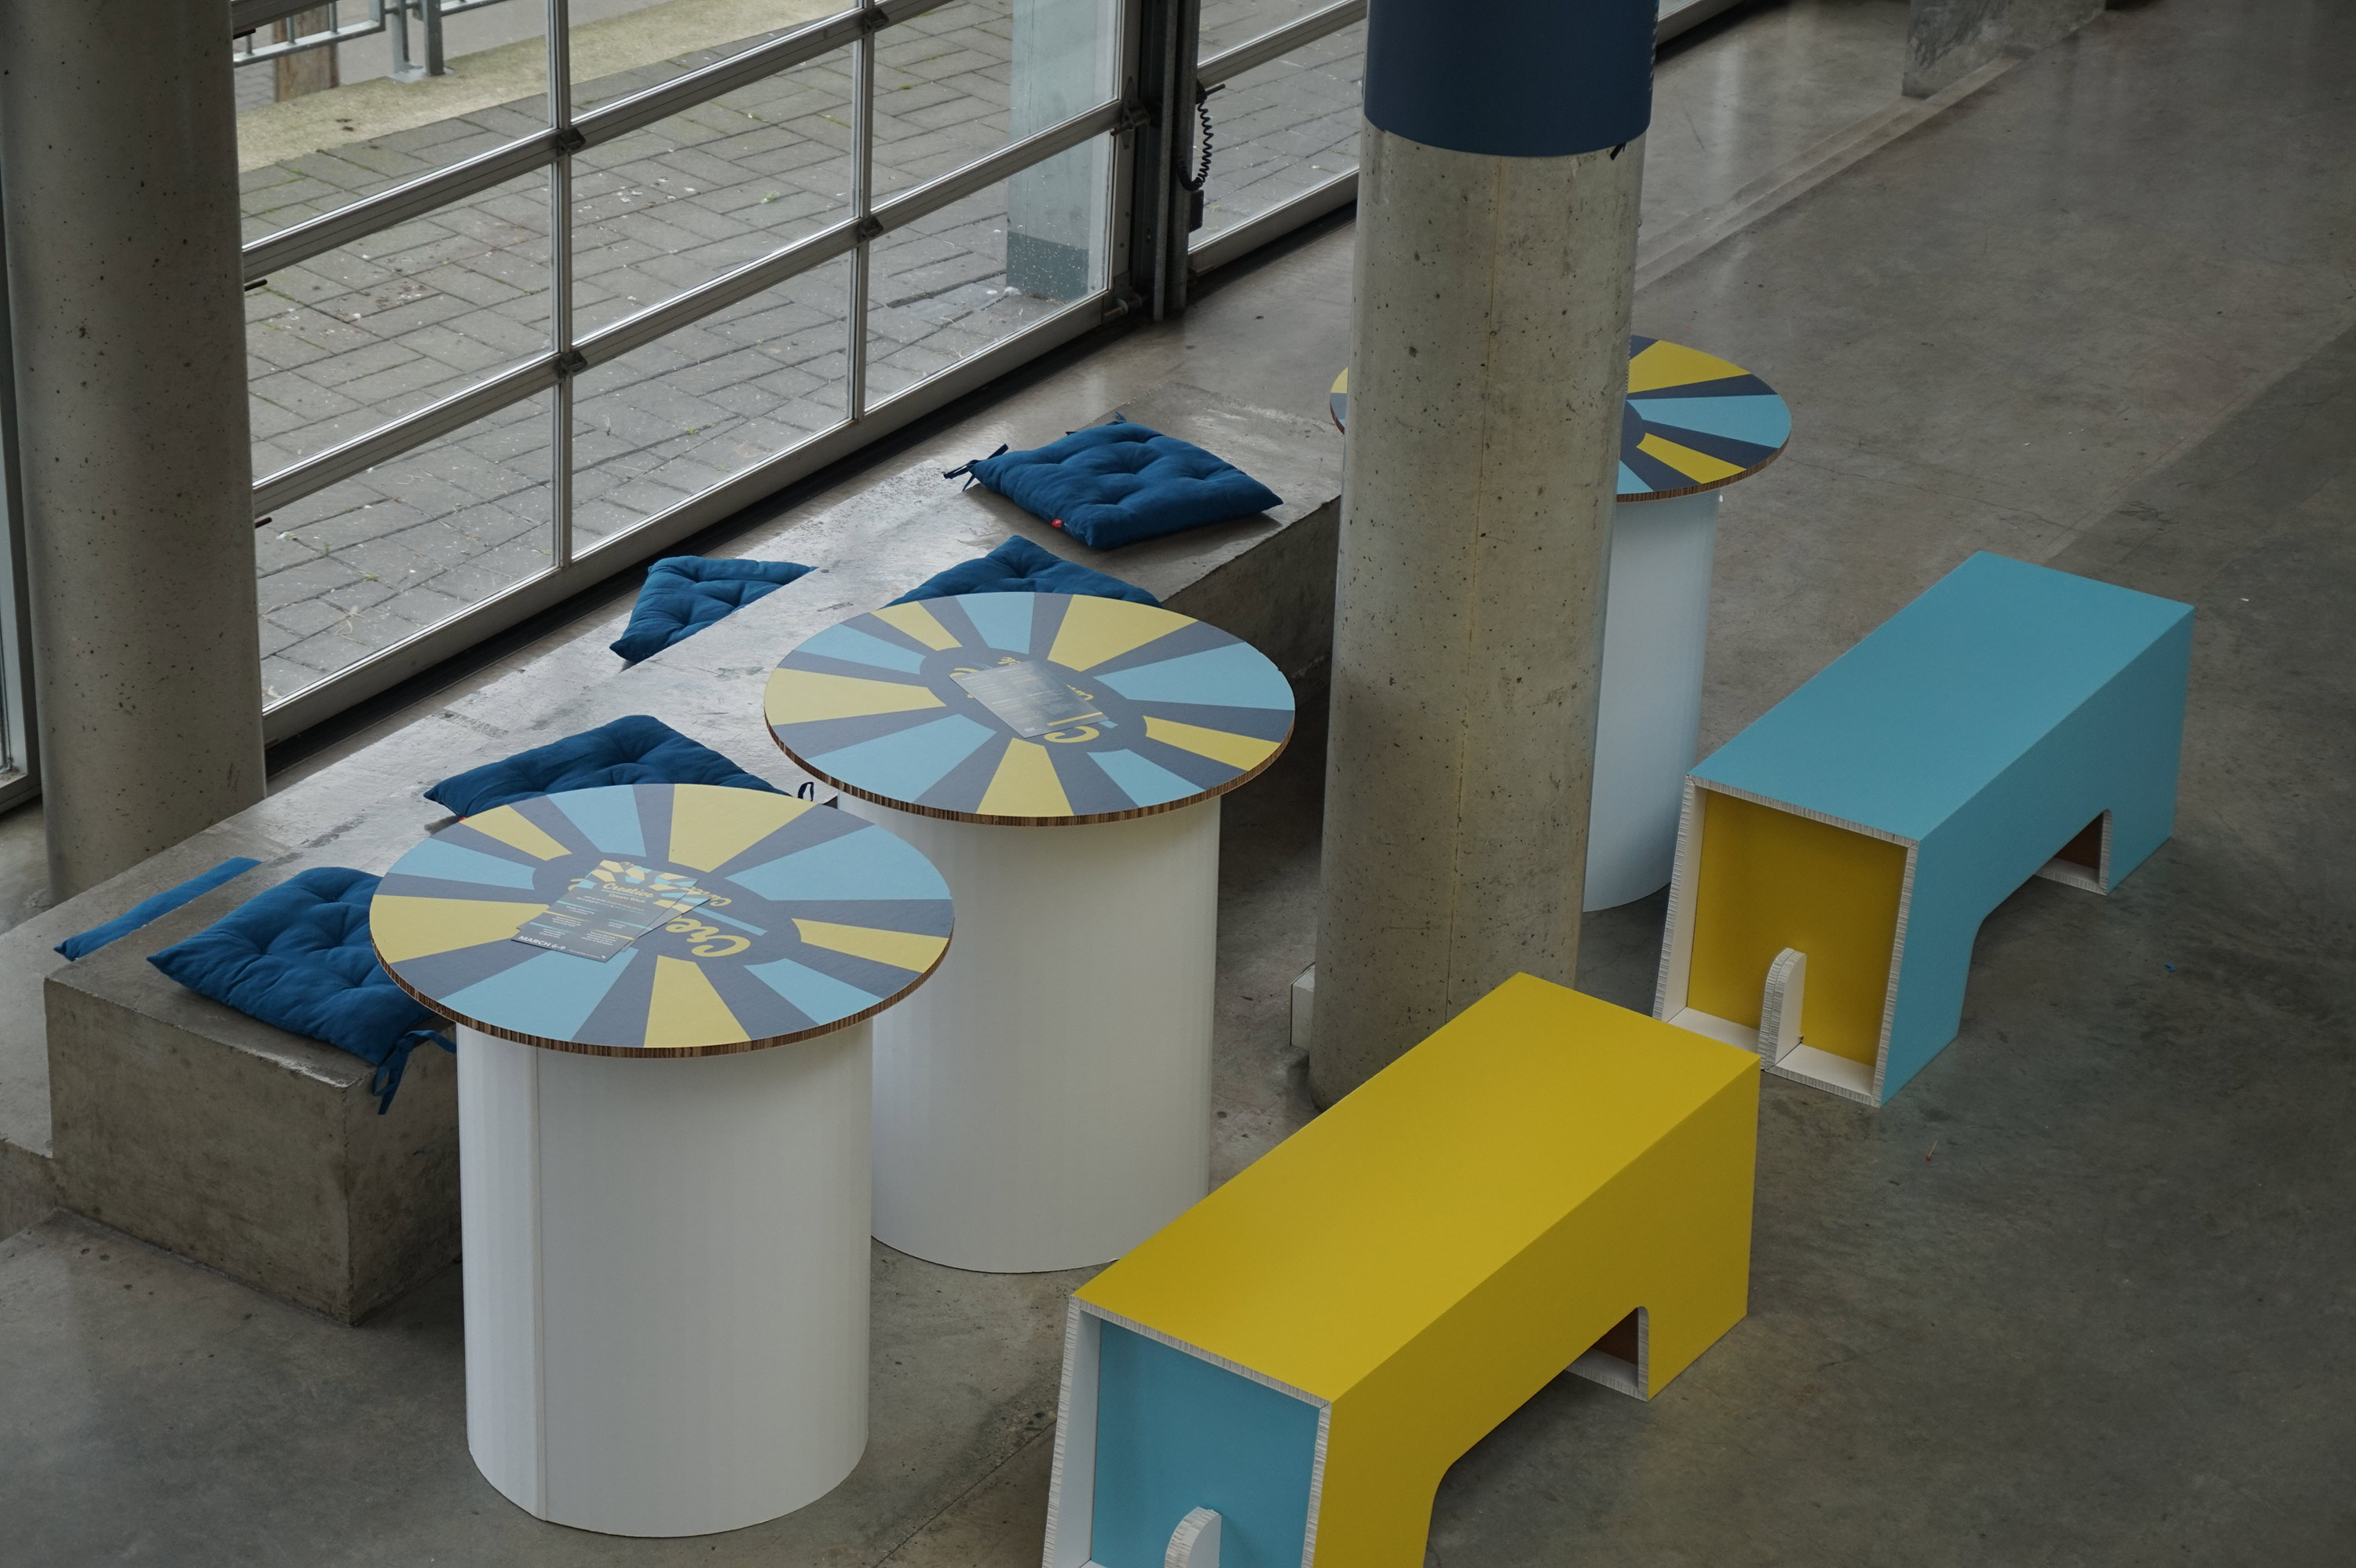 Custom Printed Tables and Benches